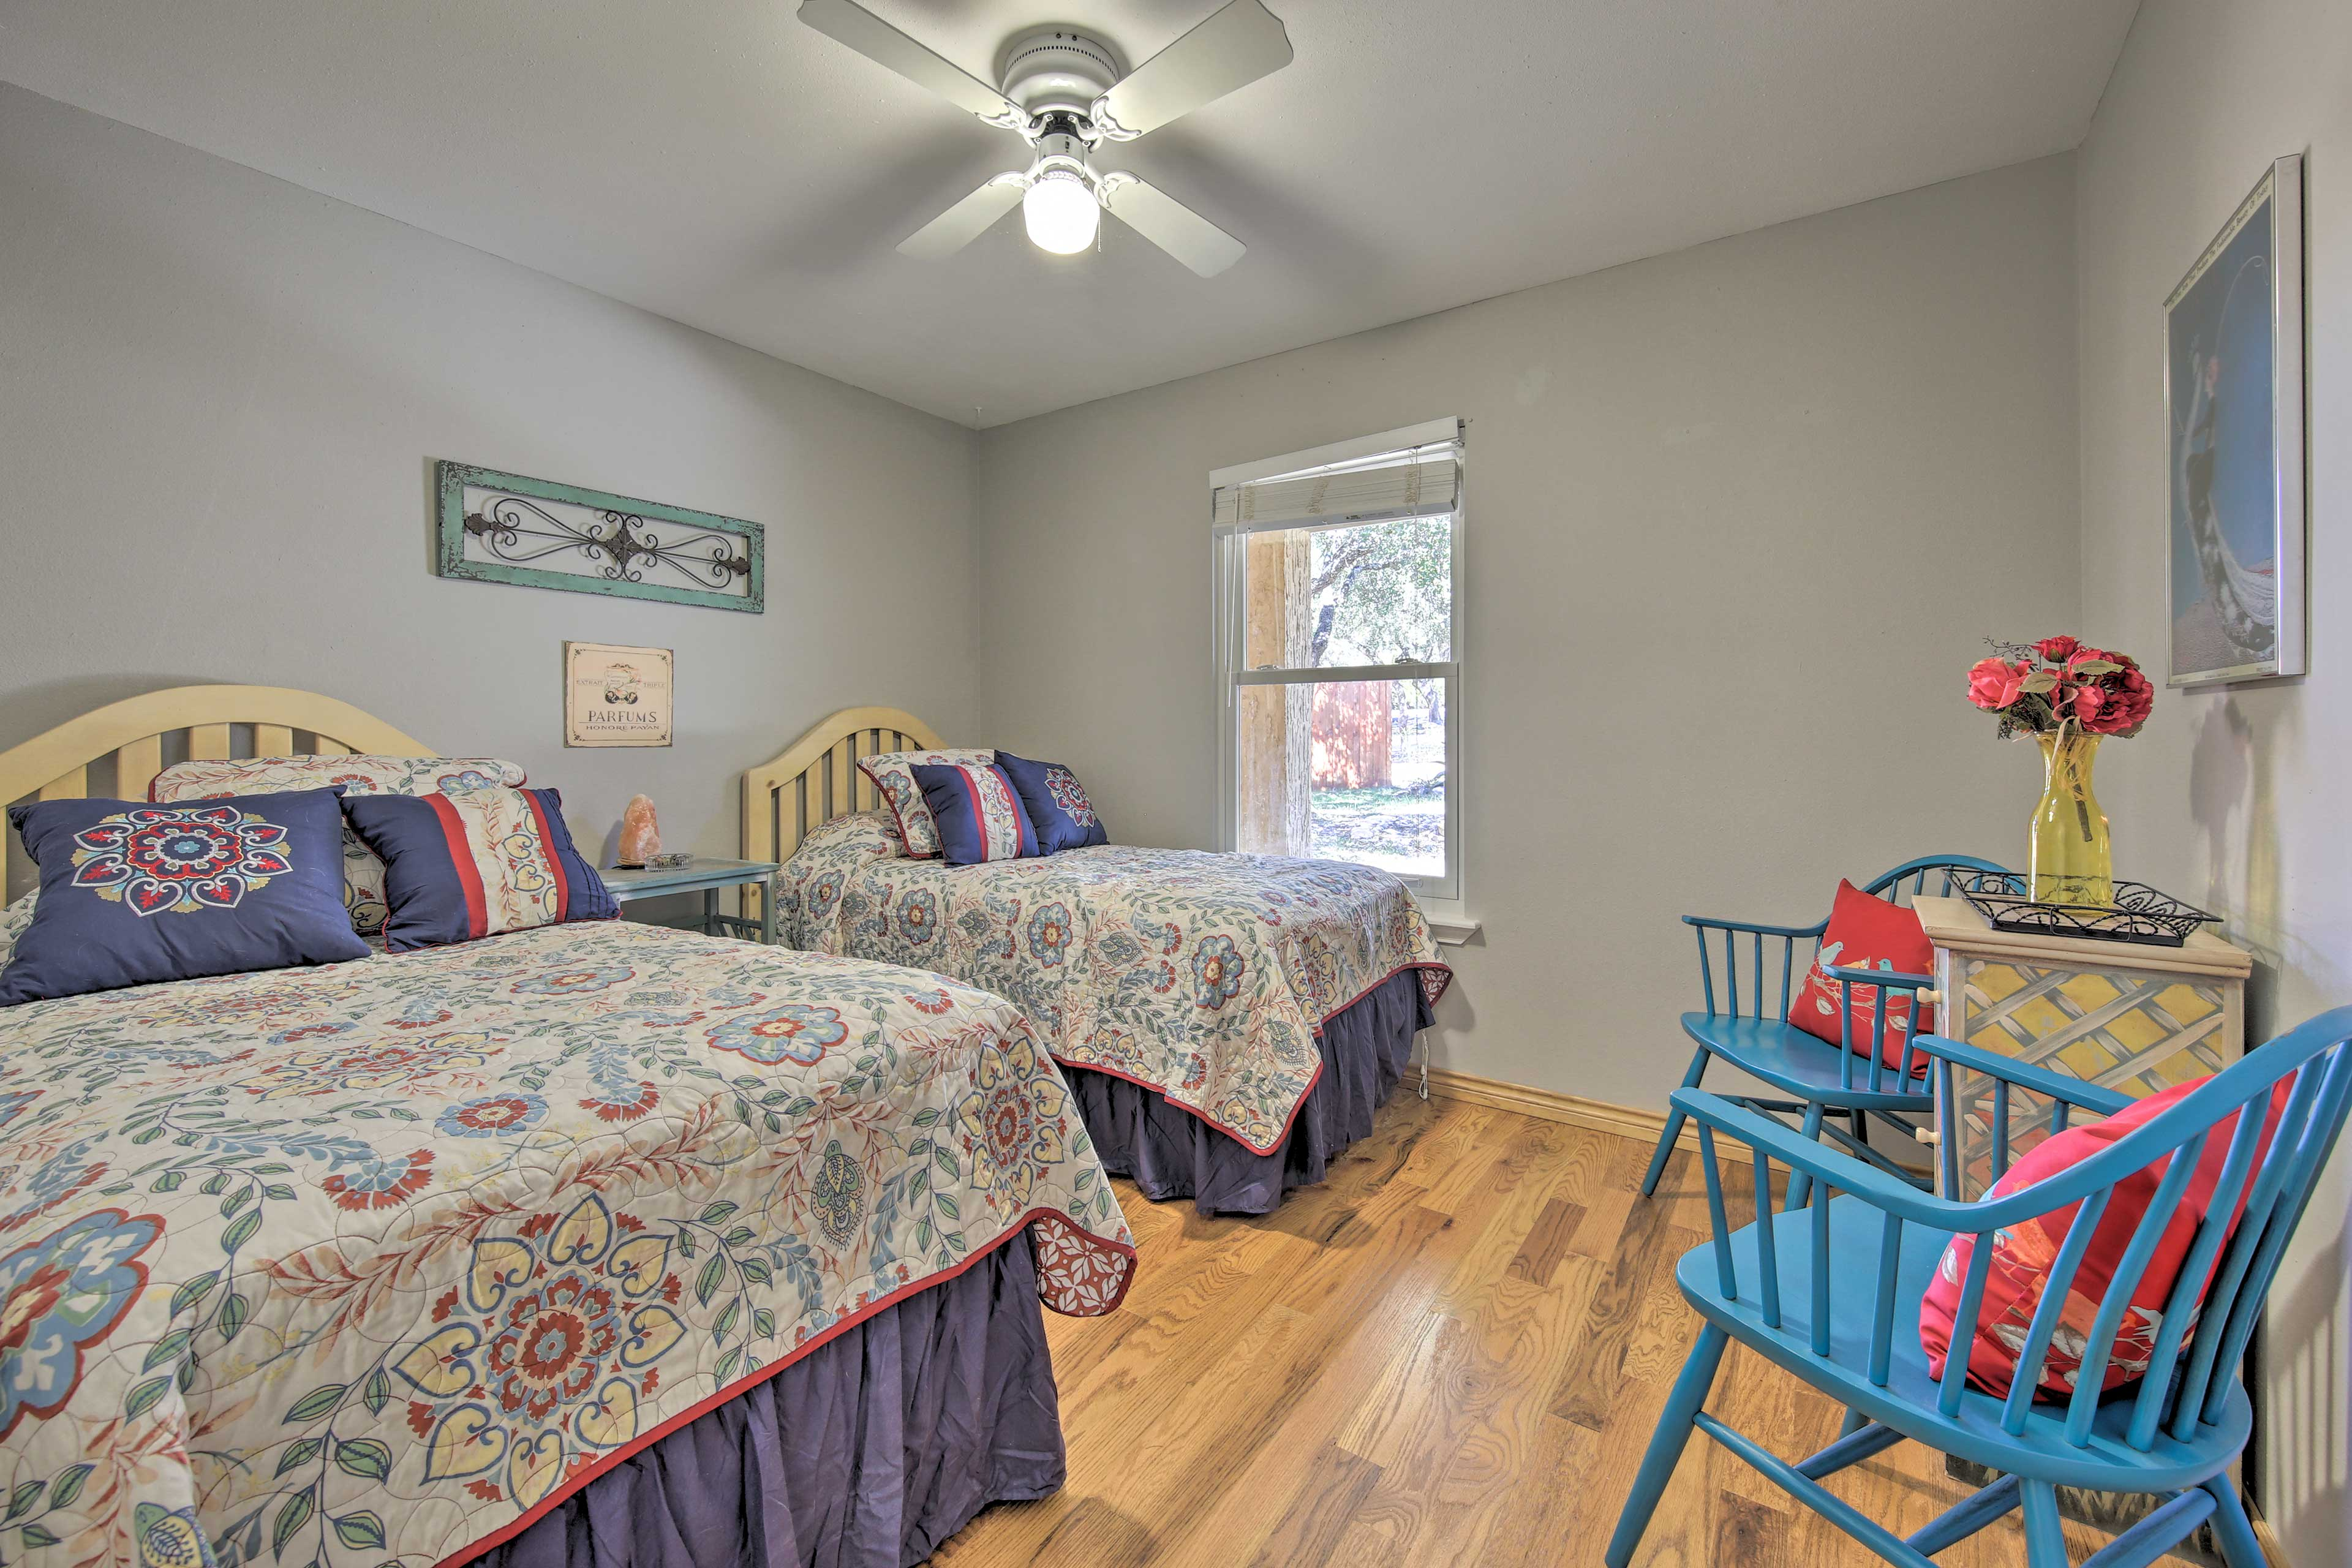 2 guests can share the comfort of this cozy room.